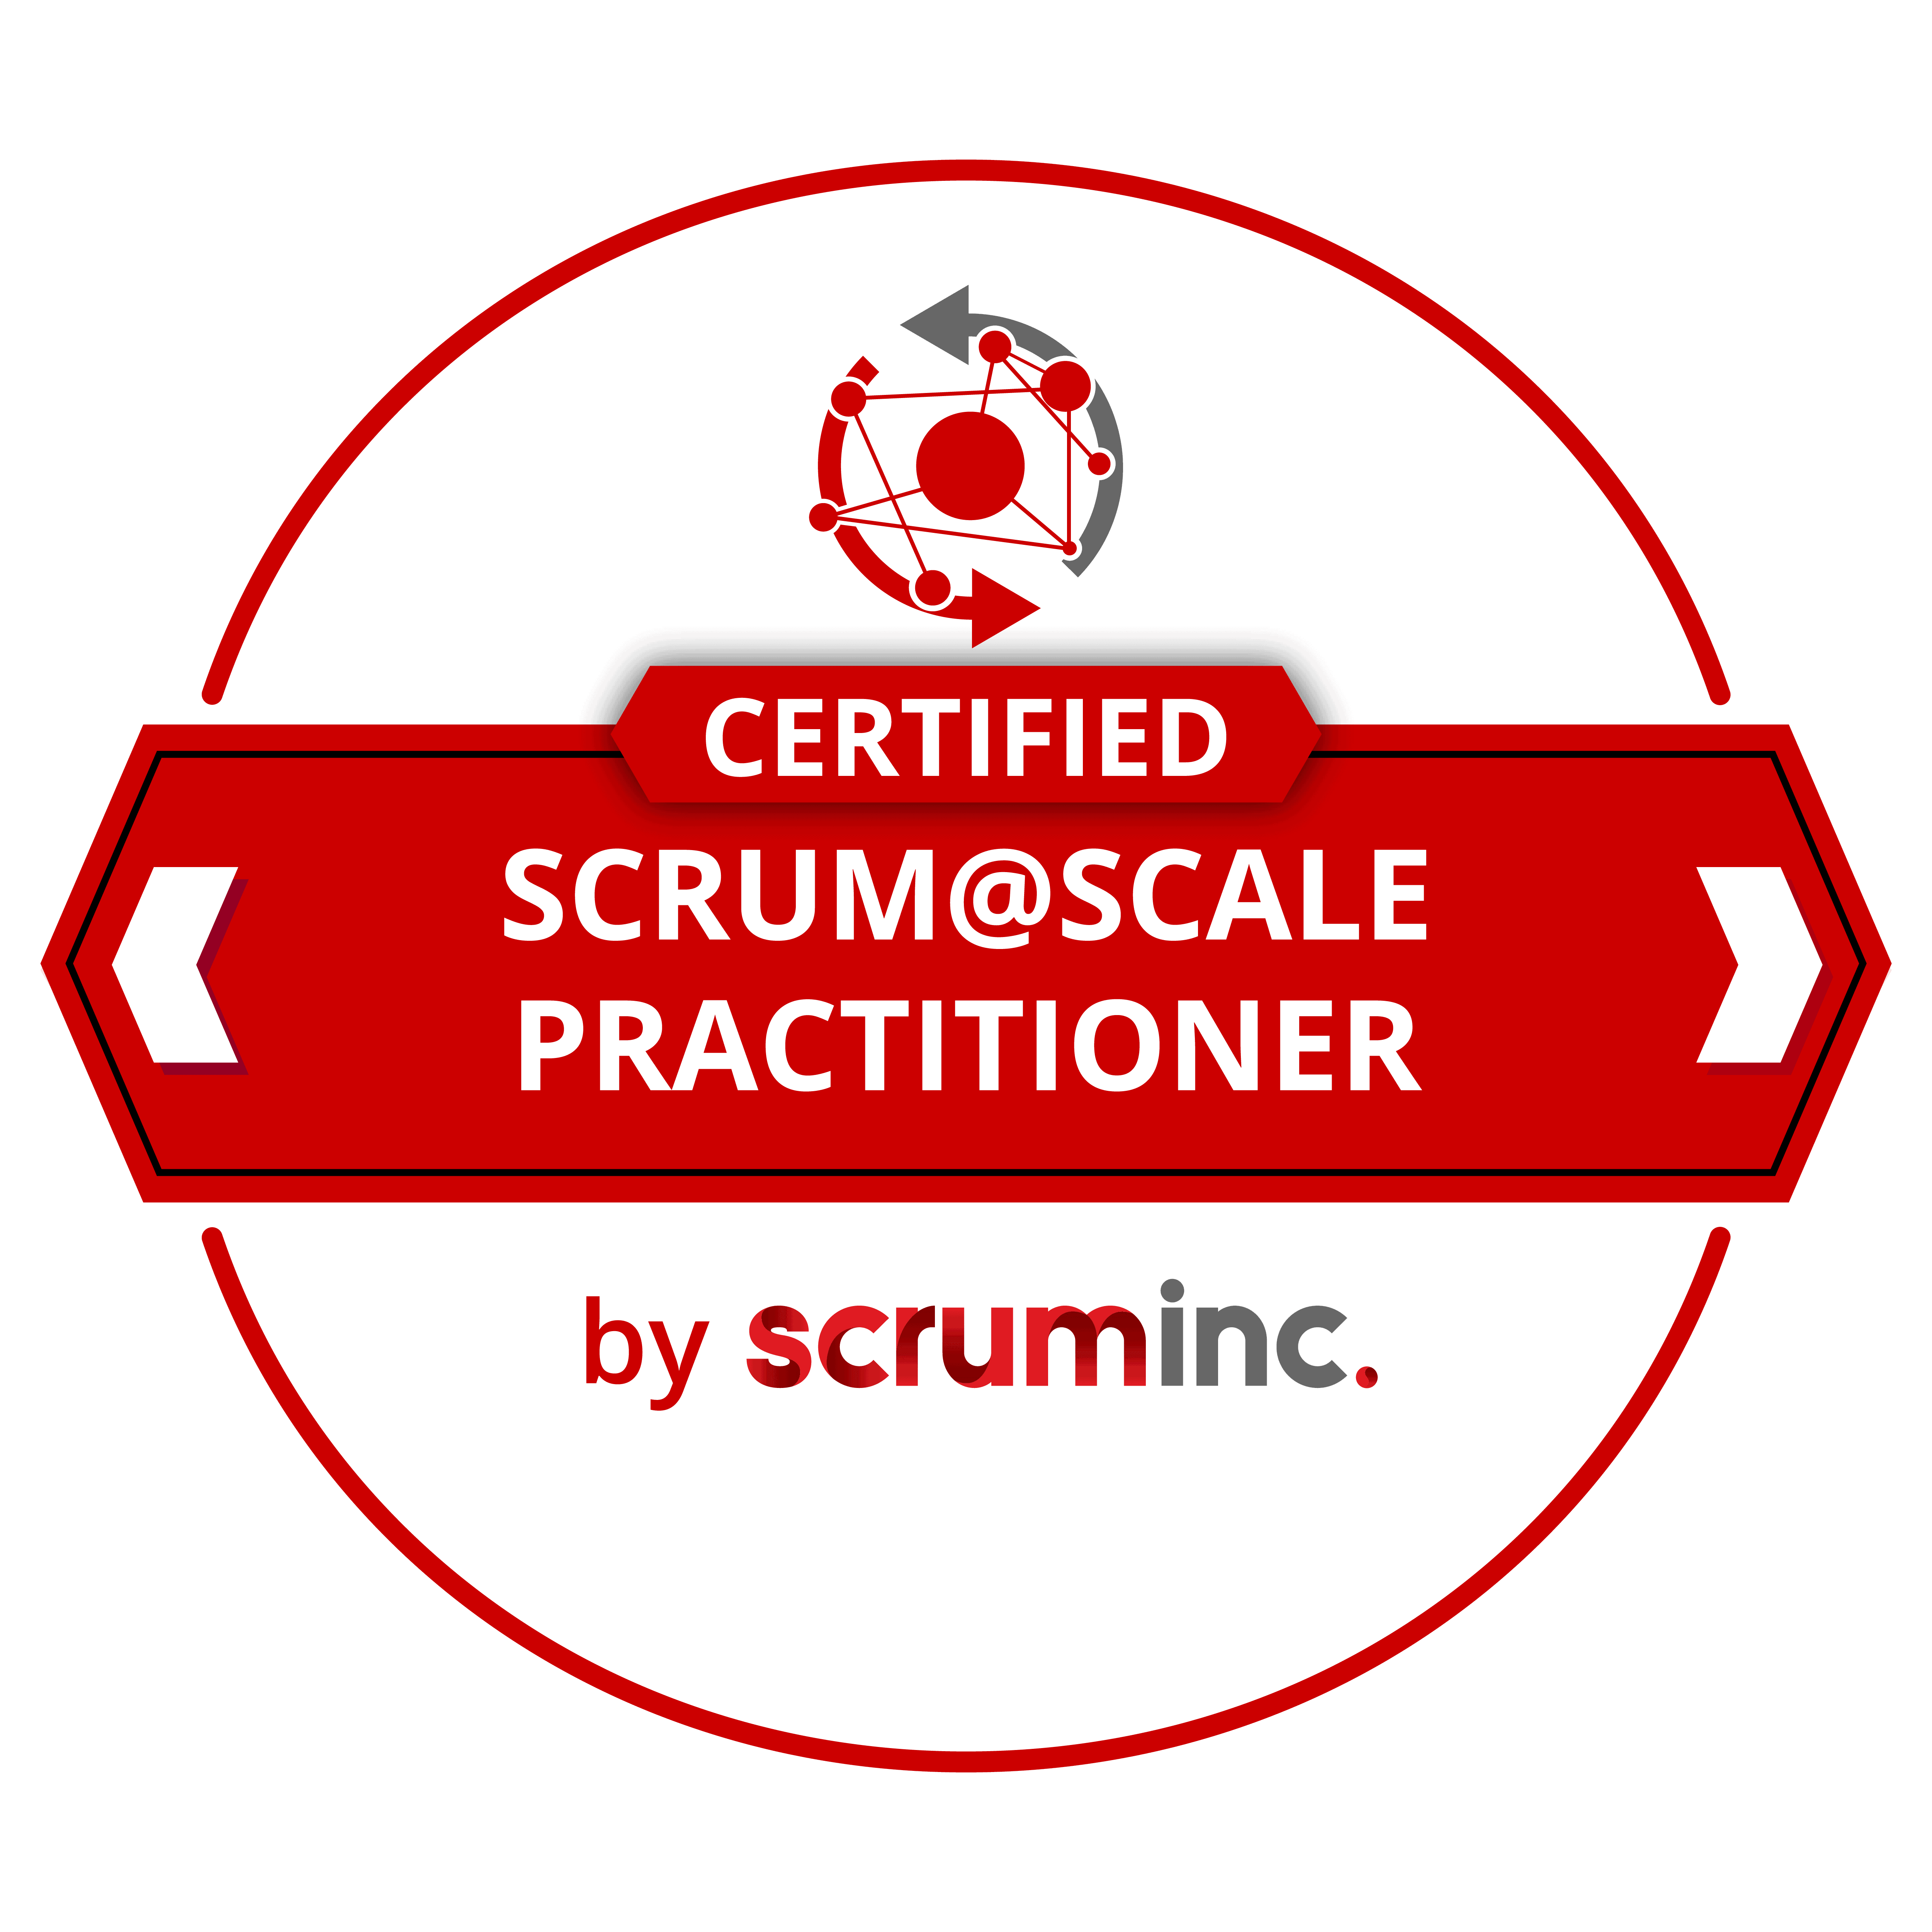 http://agilewaters.com/scrum-at-scale/